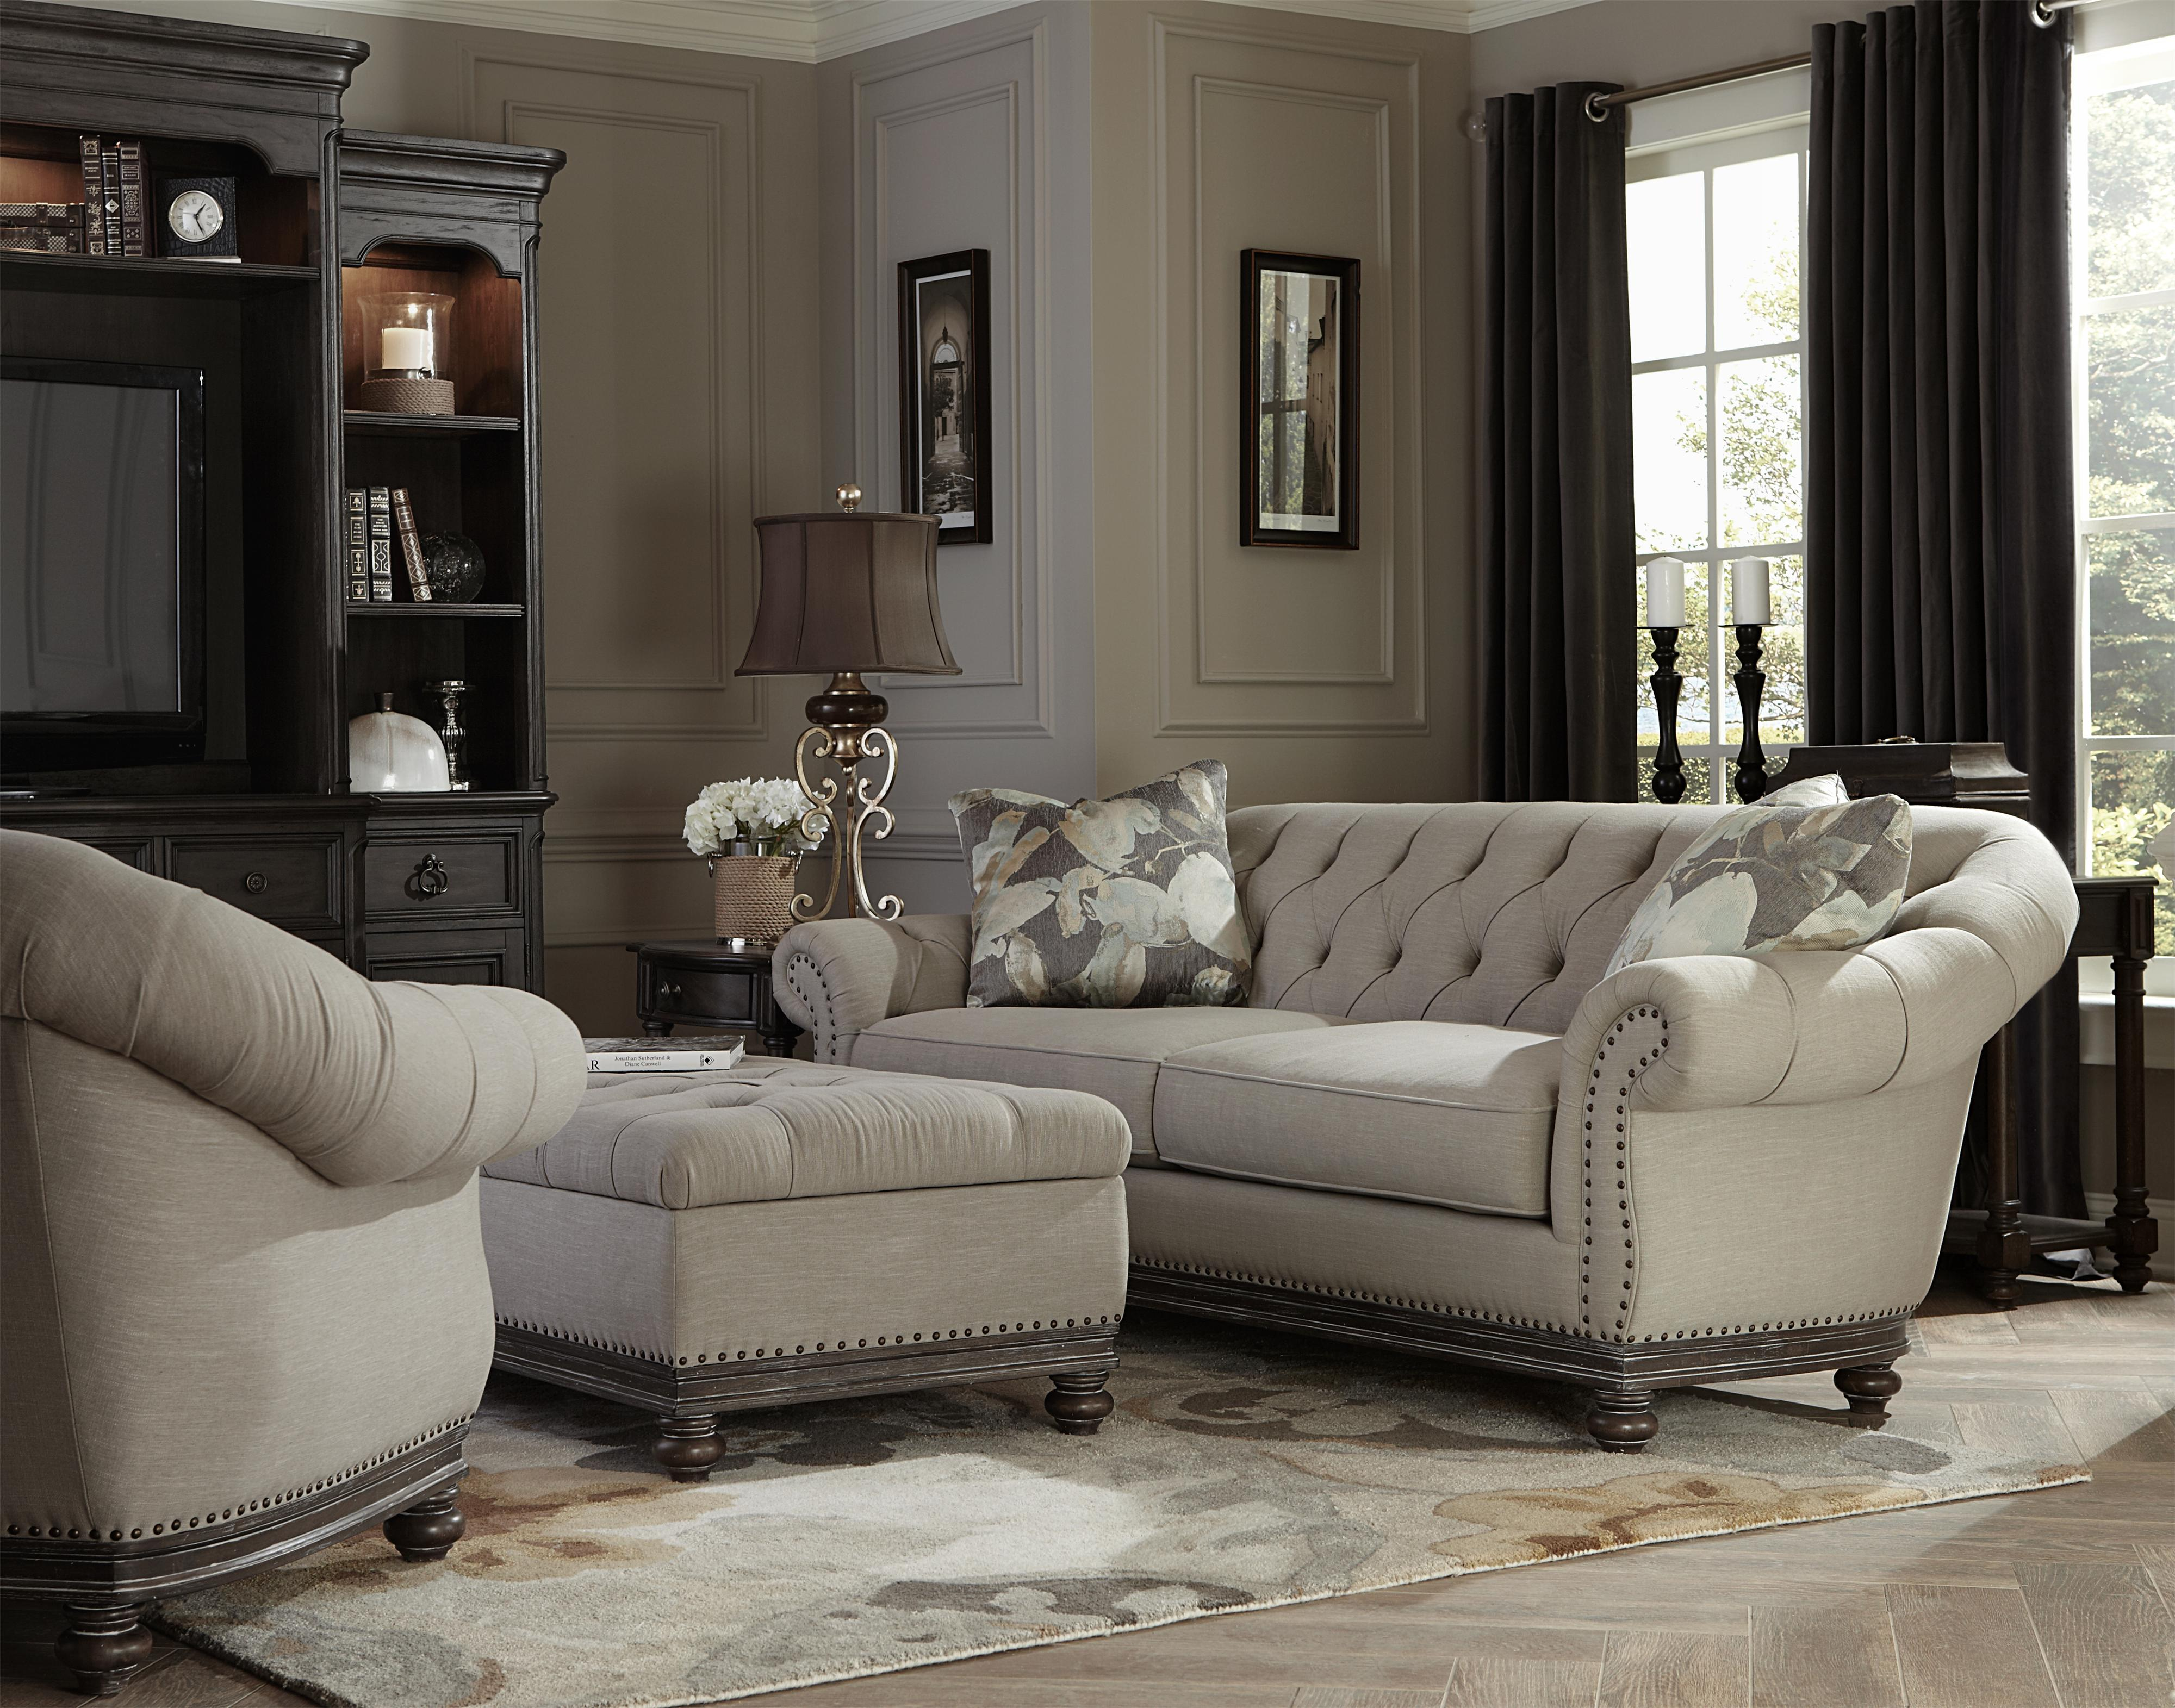 Victoria Wood Sofa Greystone Bana Home Decors Amp Gifts